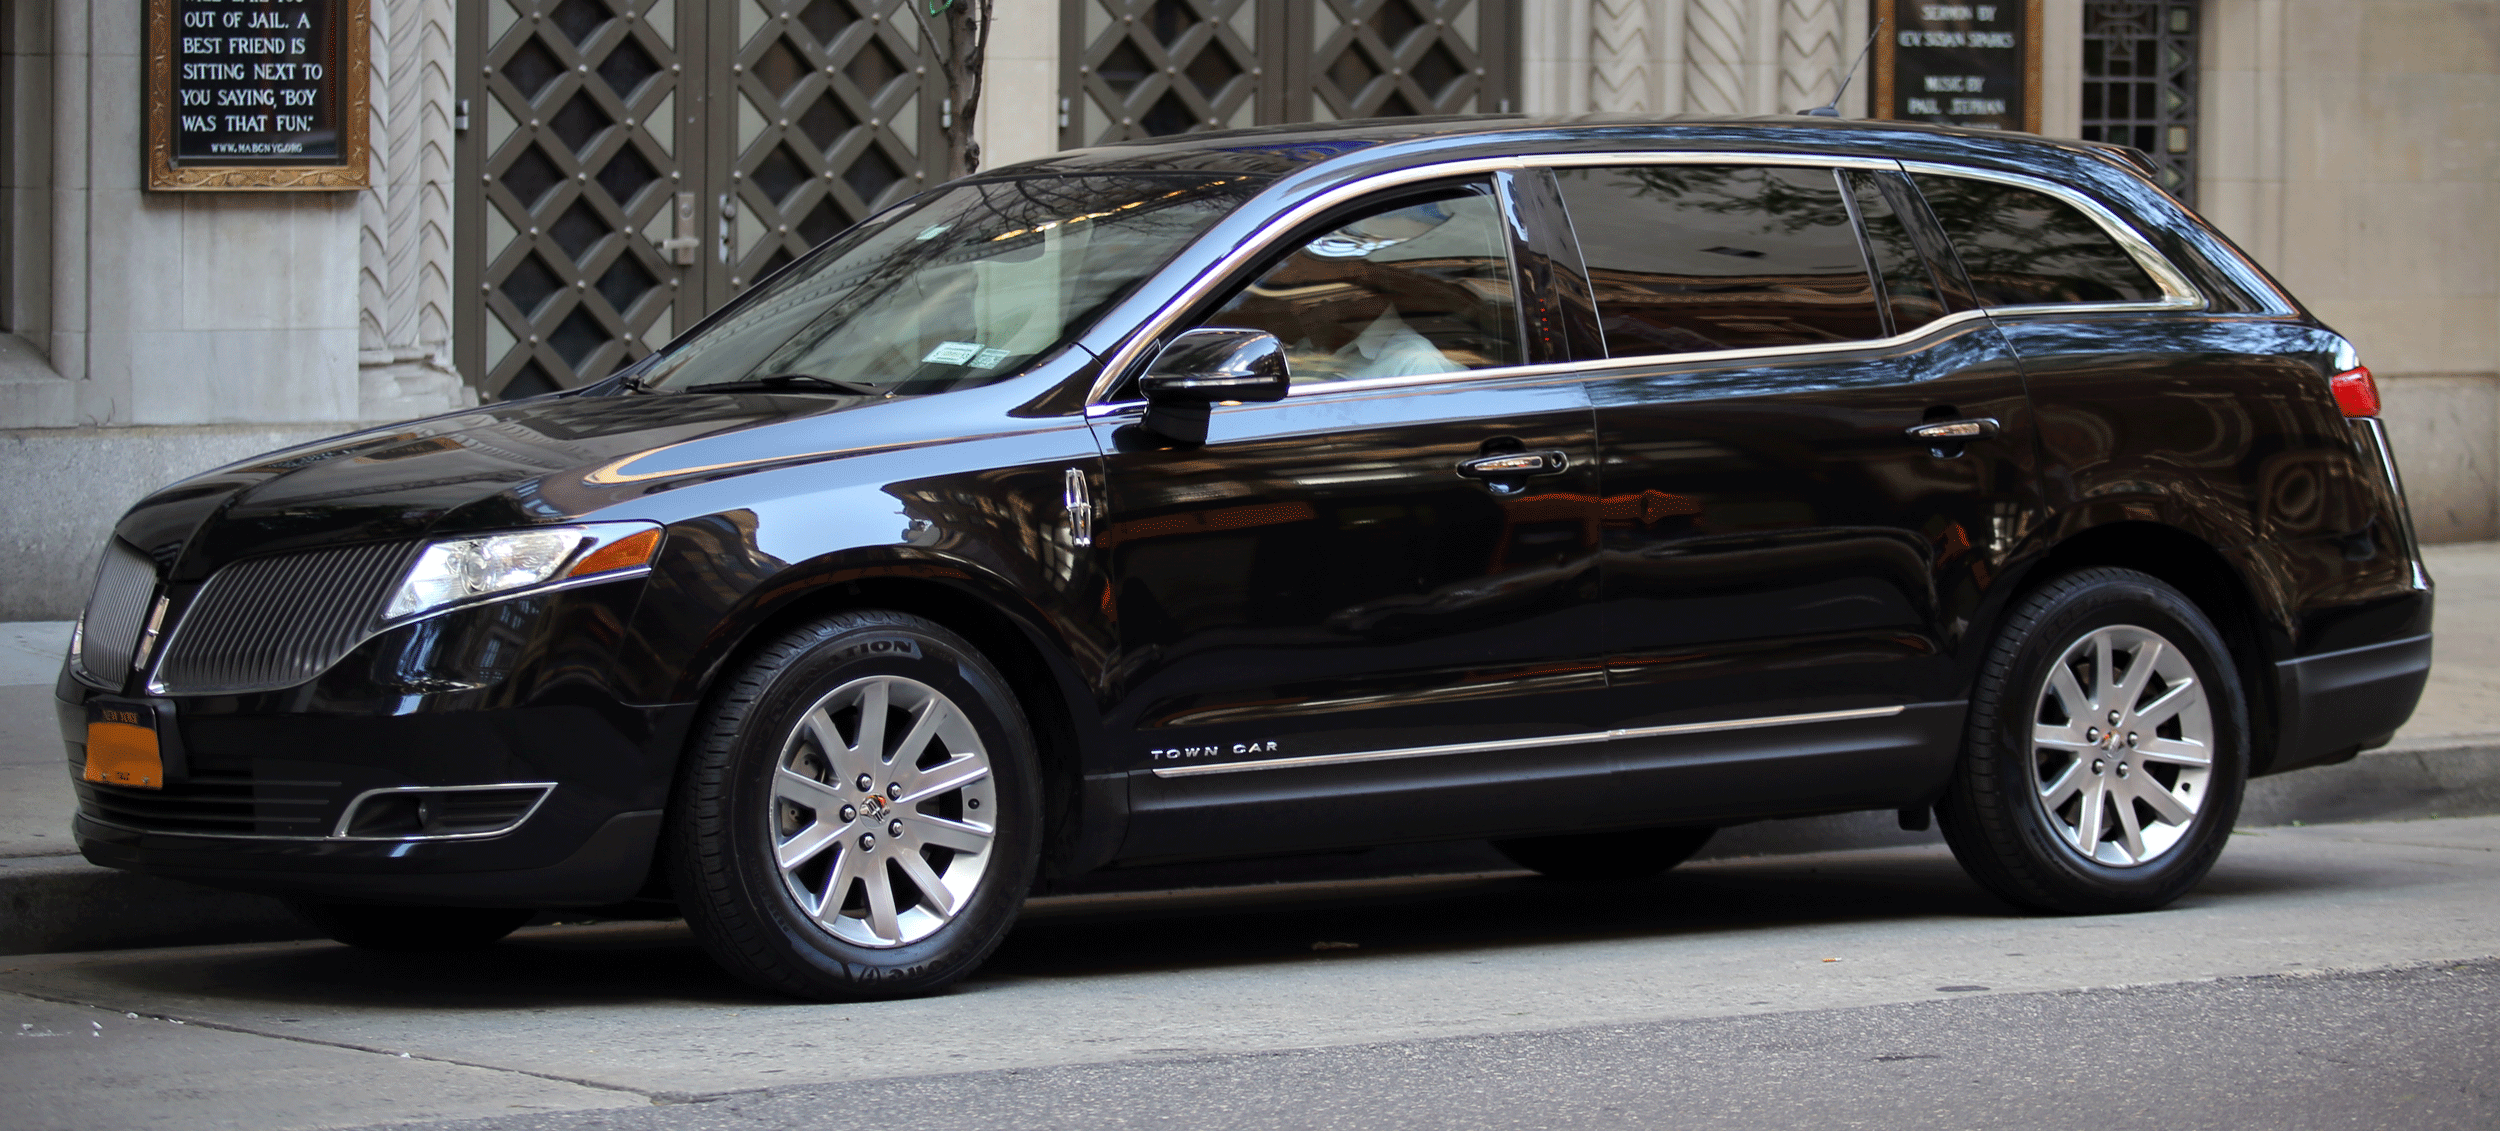 2013_Lincoln_Mk_T_Town_Car_